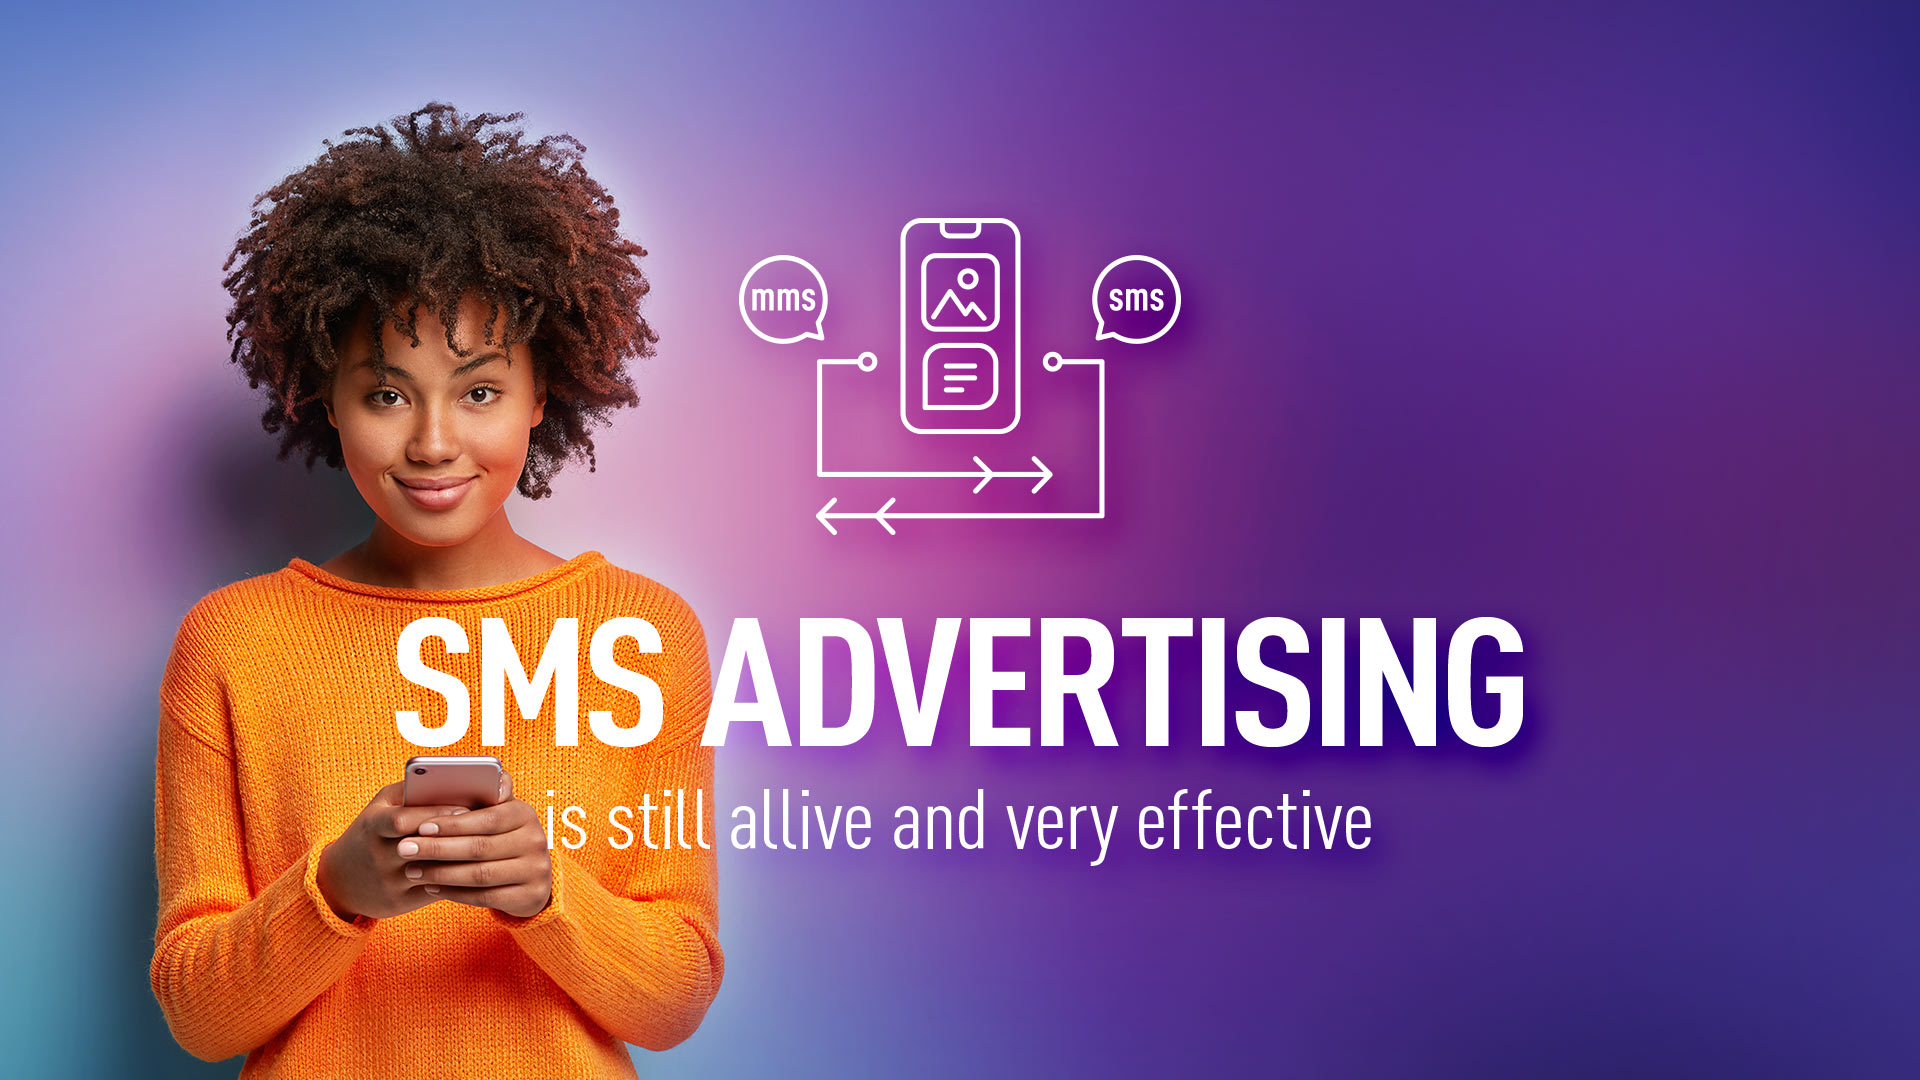 SMS advertising is still alive